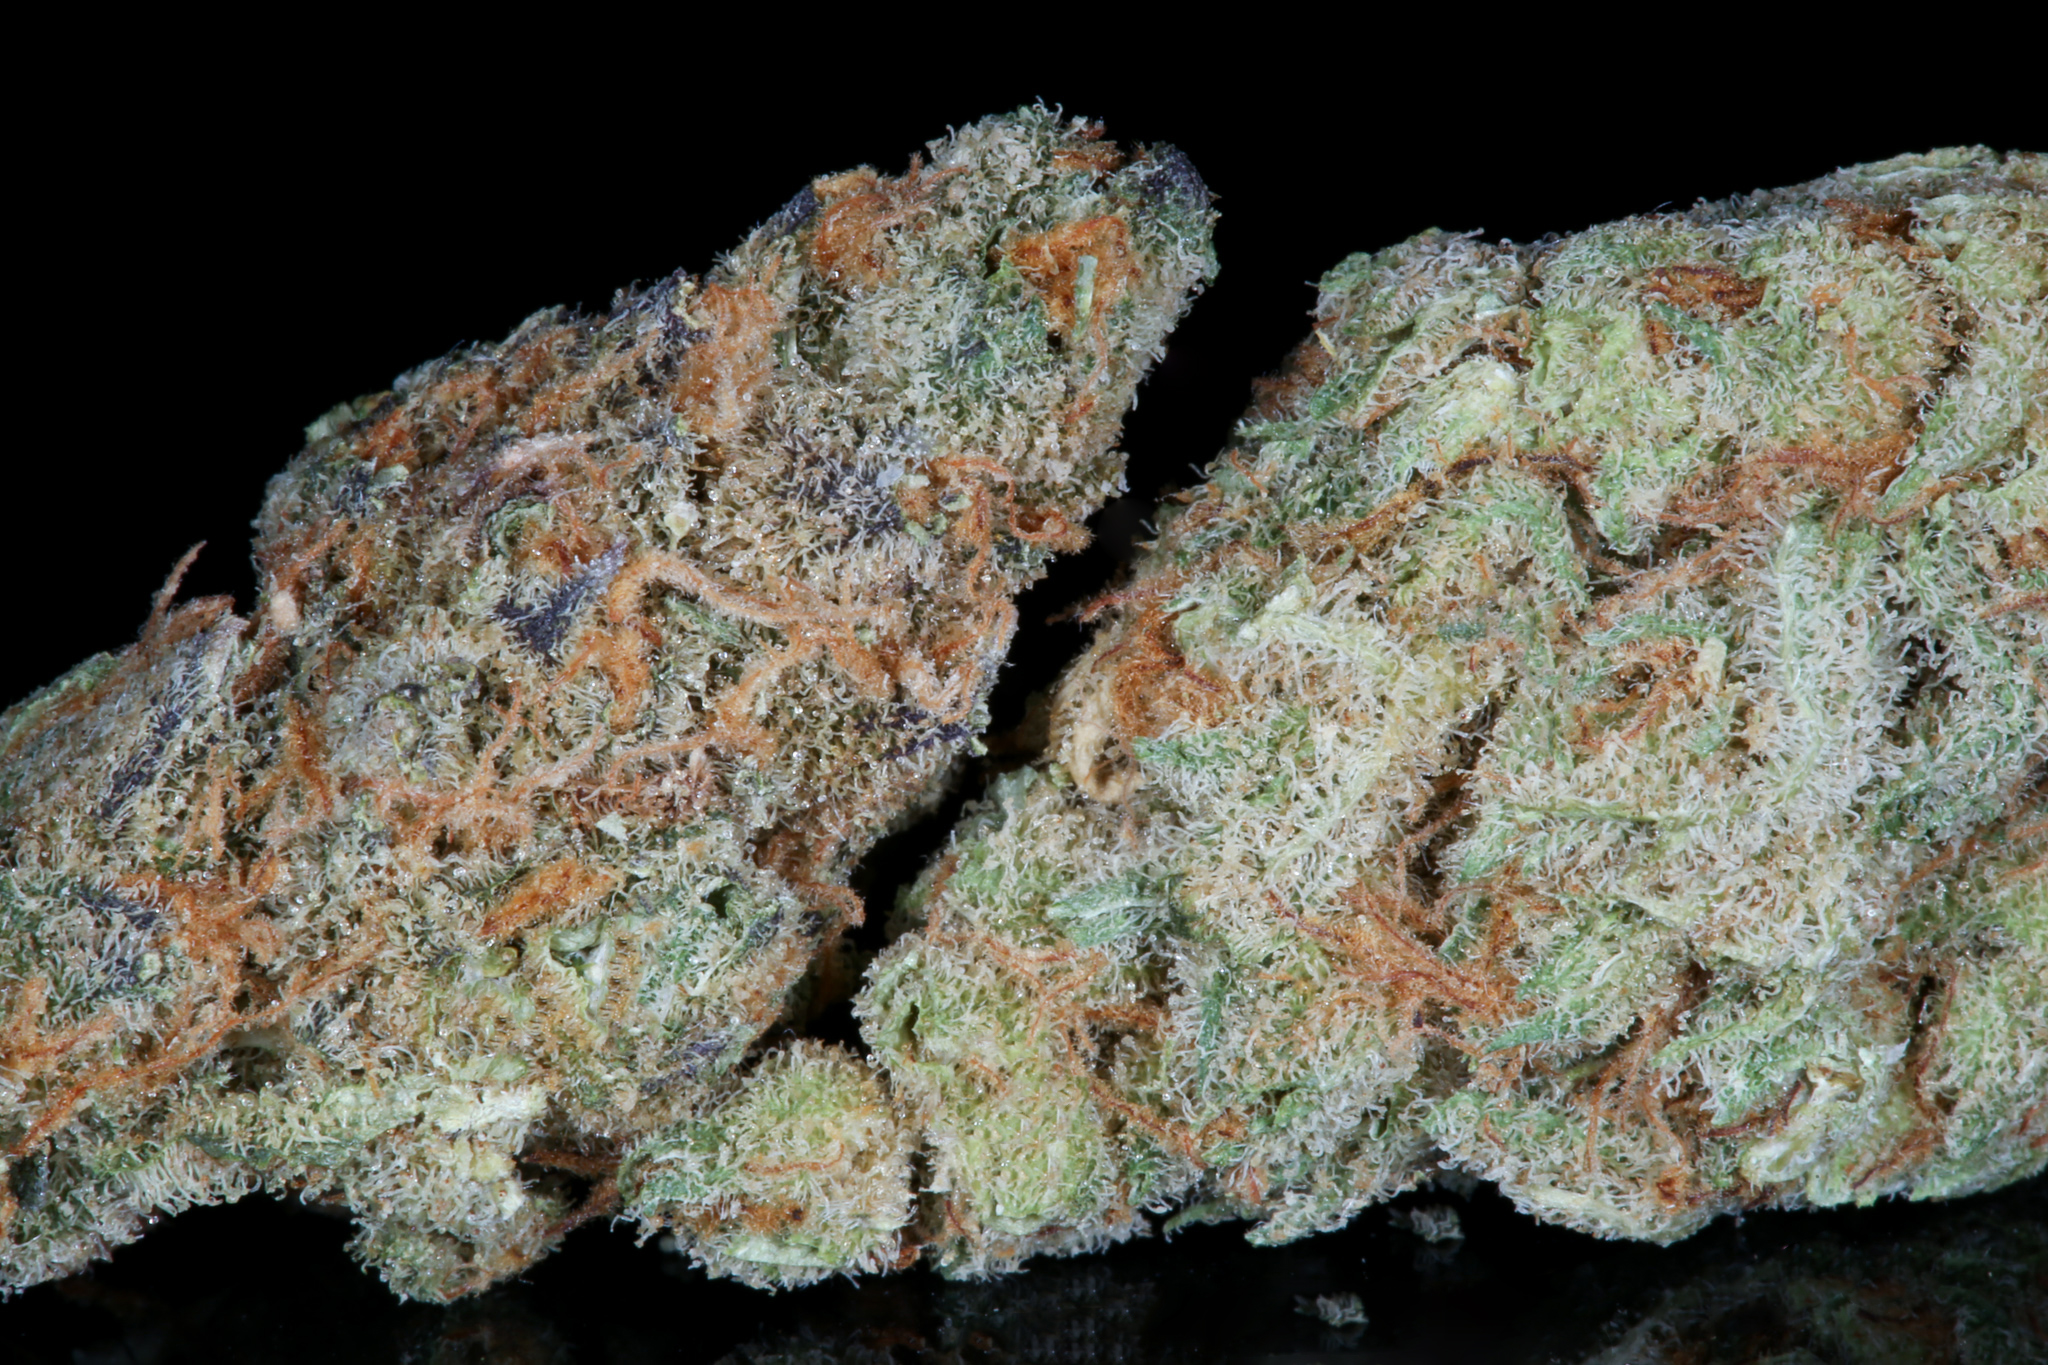 Slymer-weed-strain-matrix-tga-genetics-chernobyl-nevada-matrix-best-weed-ever-Dried-4706